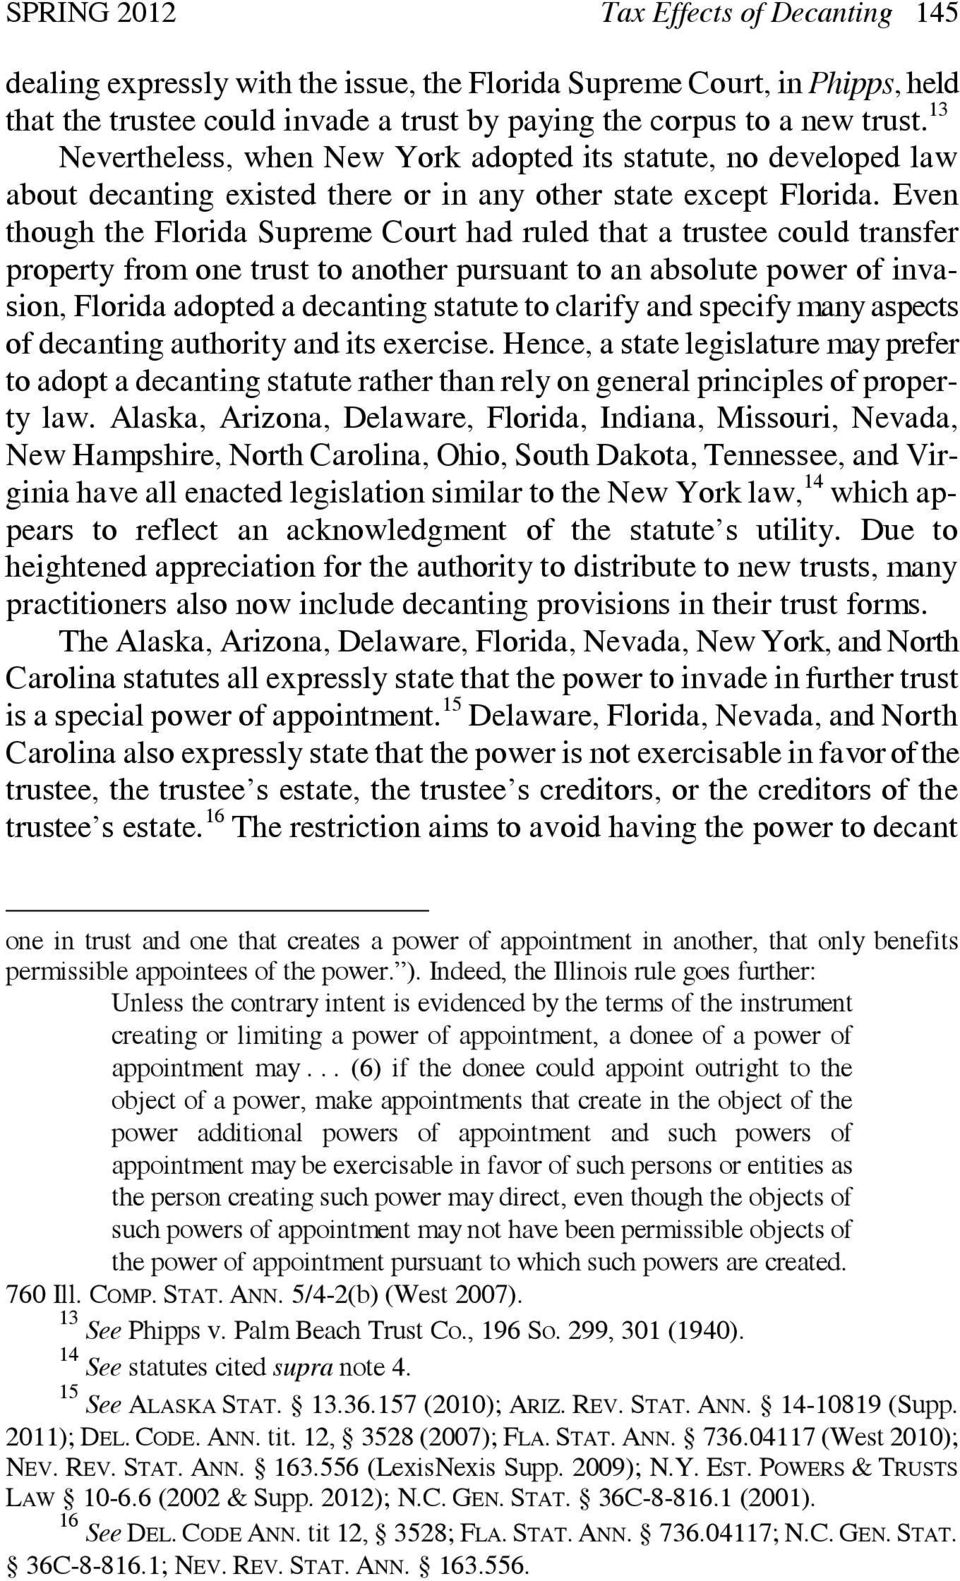 Even though the Florida Supreme Court had ruled that a trustee could transfer property from one trust to another pursuant to an absolute power of invasion, Florida adopted a decanting statute to